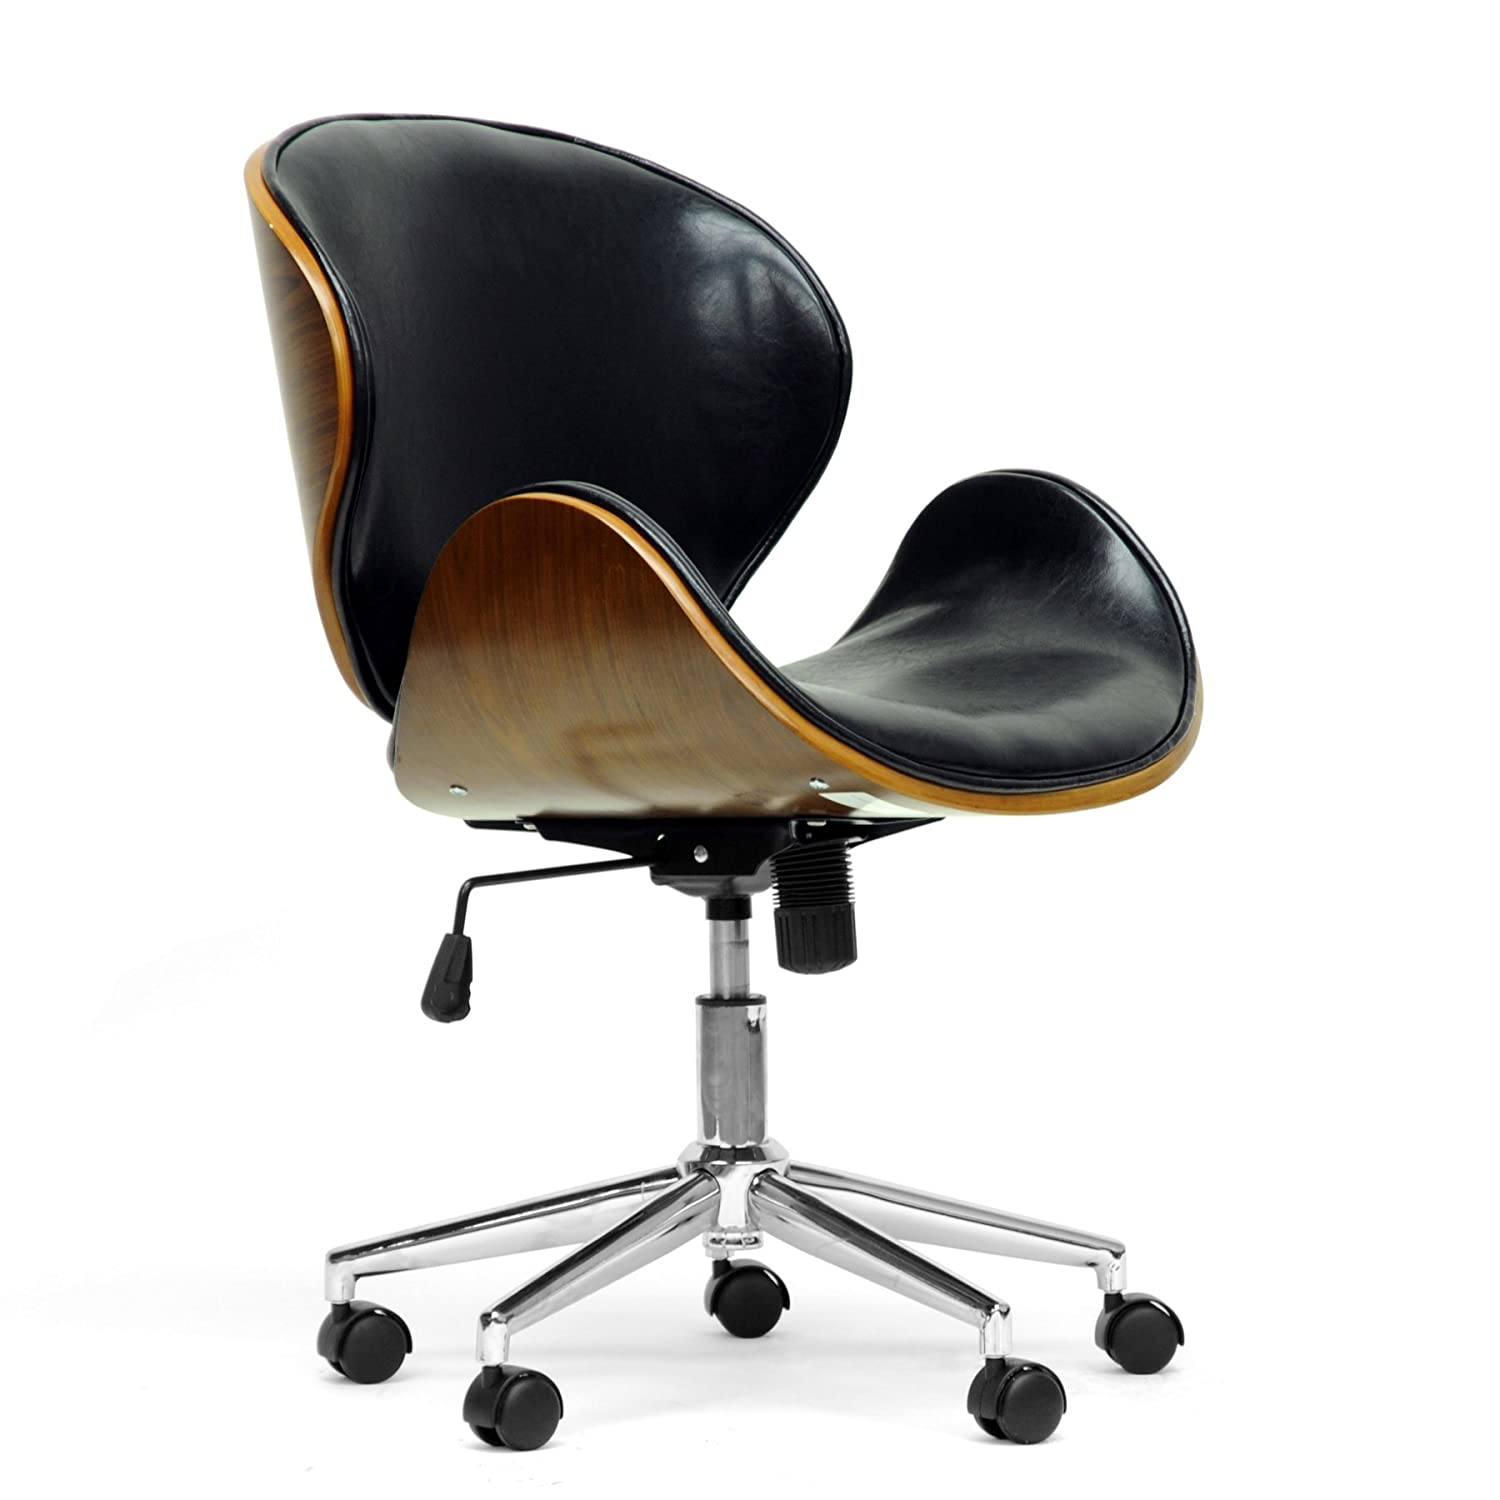 design chair century ideas desk stunning inspiration smart modern office plain mid